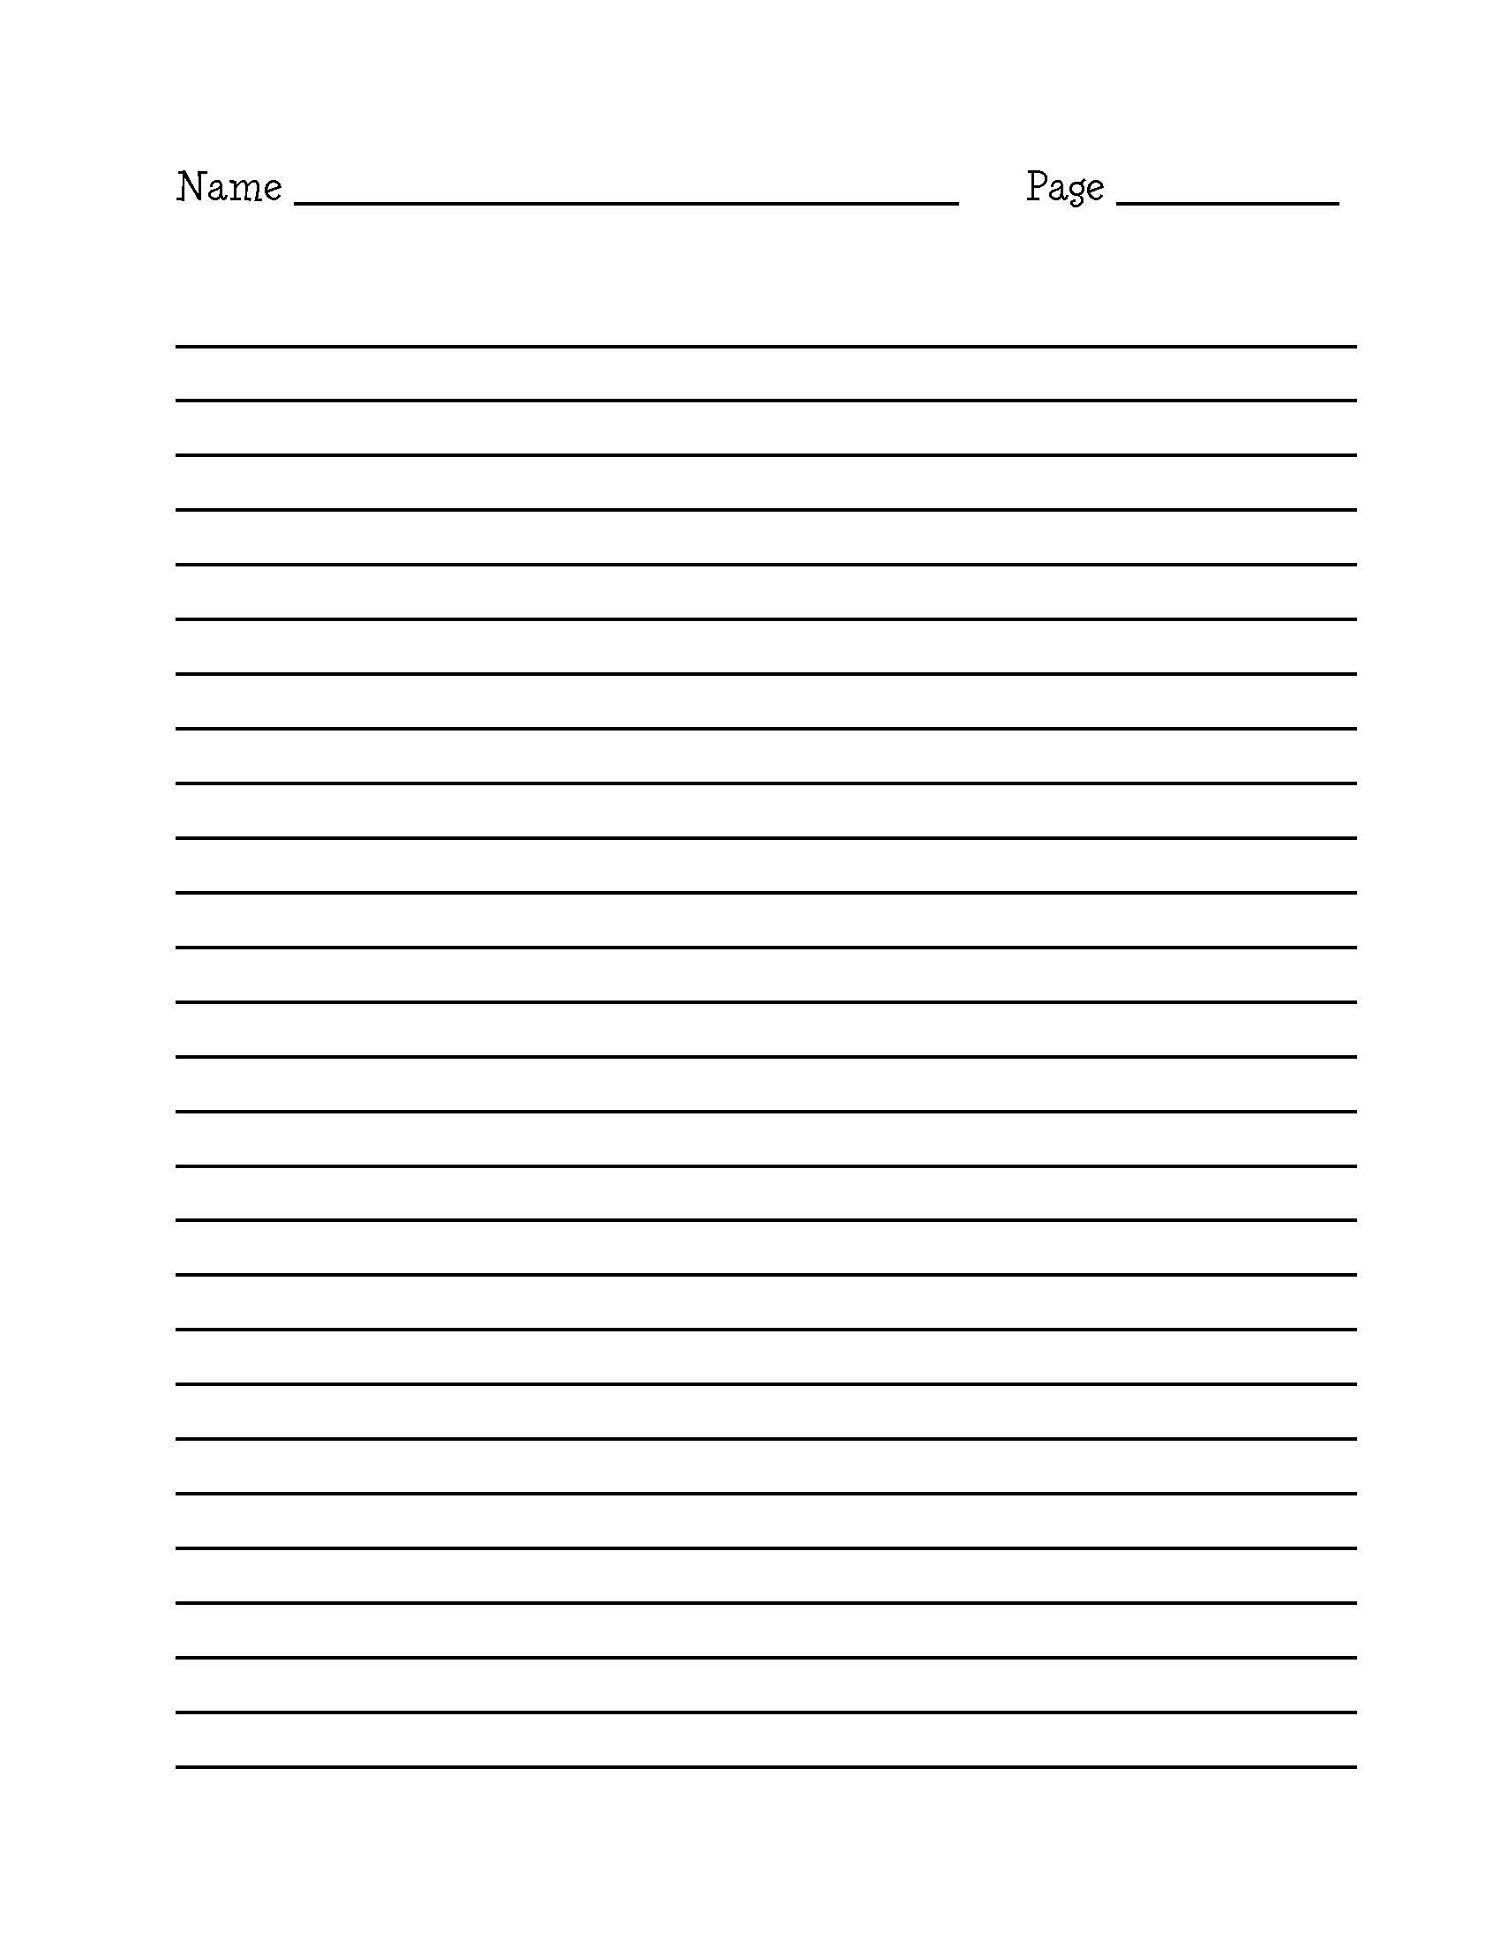 Awesome Lined Paper For Writing For Cute Writing Paper | Dear Joya Inside Lined Pages For Writing